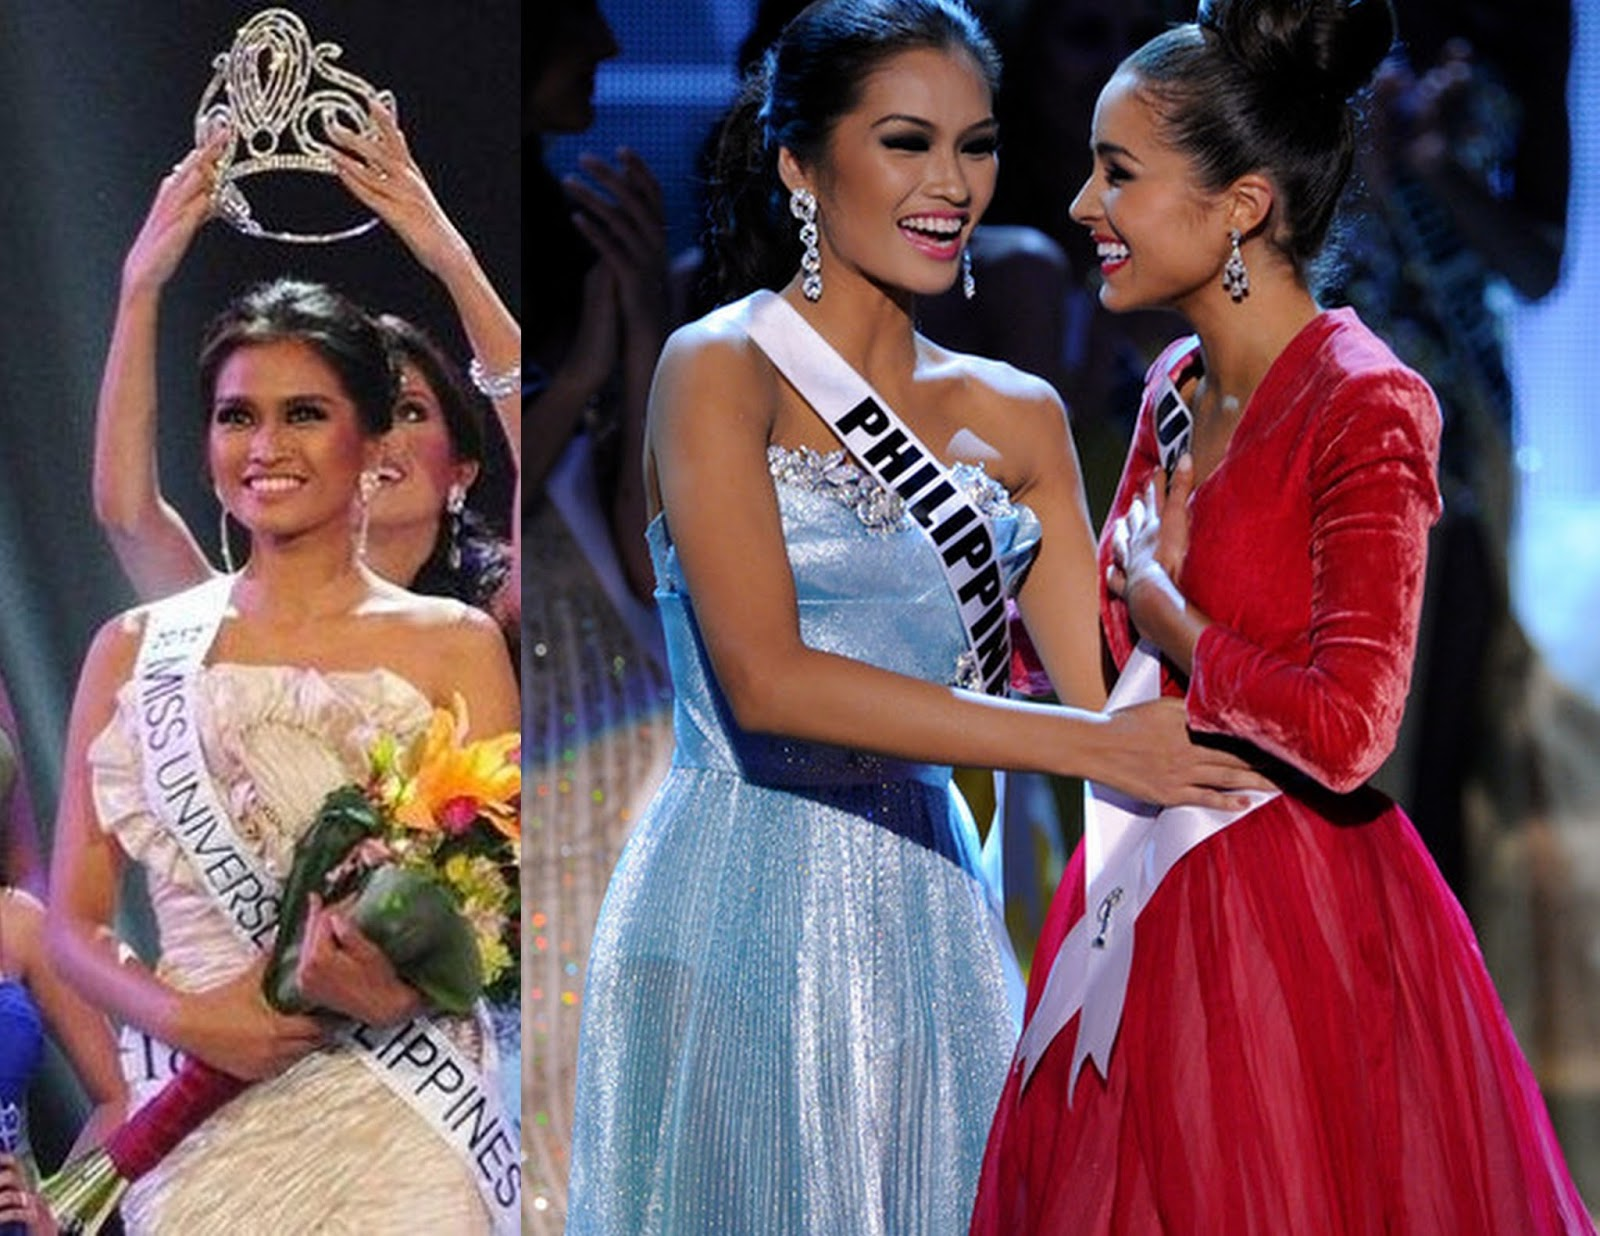 Miss Universe 2012 First runner-up Janine Tugonon is now a